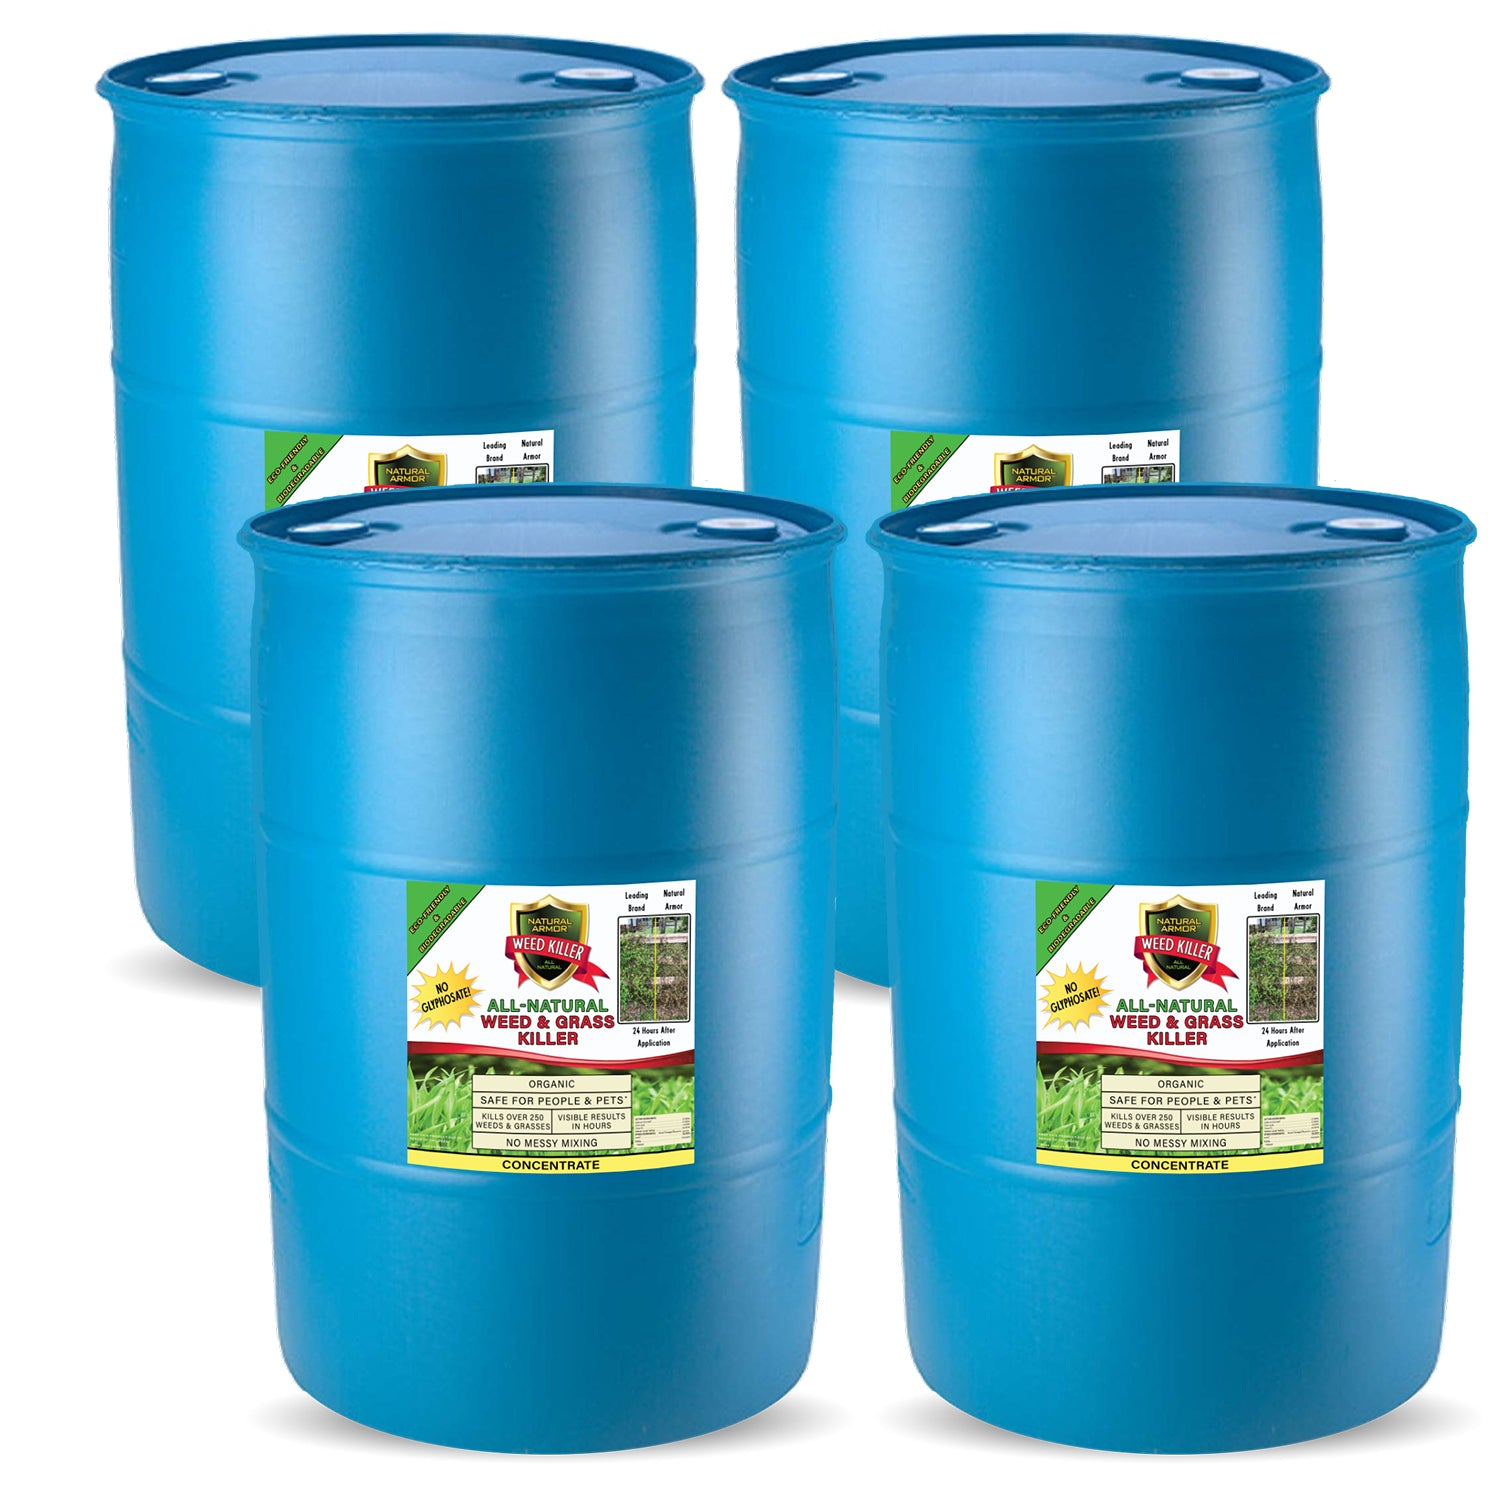 Natural Armor All-Natural Weed Killer — (4) 55 Gallons — 4-1 Concentrate